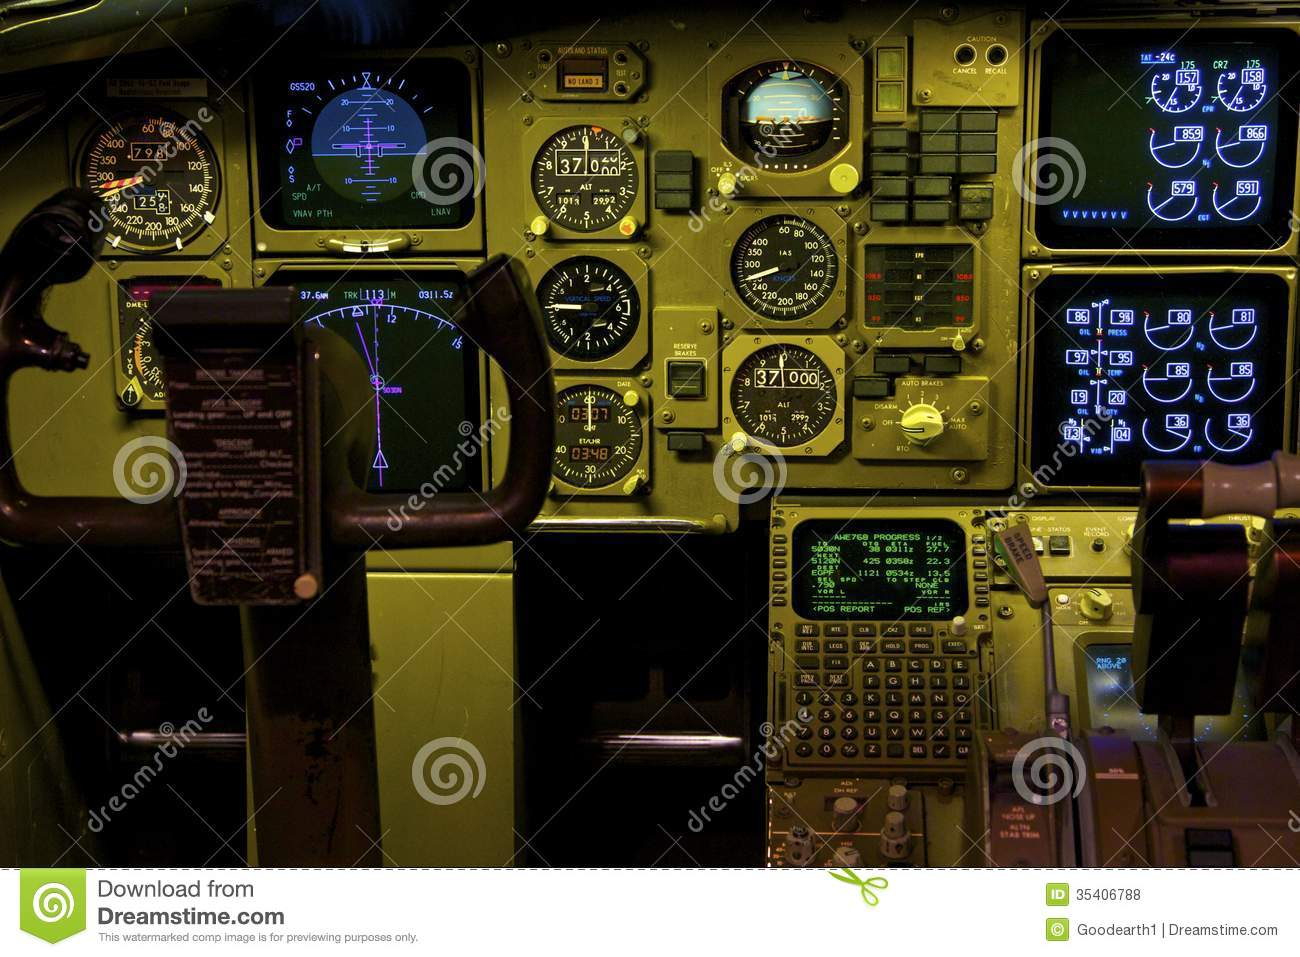 Boeing 757 Cockpit stock photo  Image of engine, aircraft - 35406788